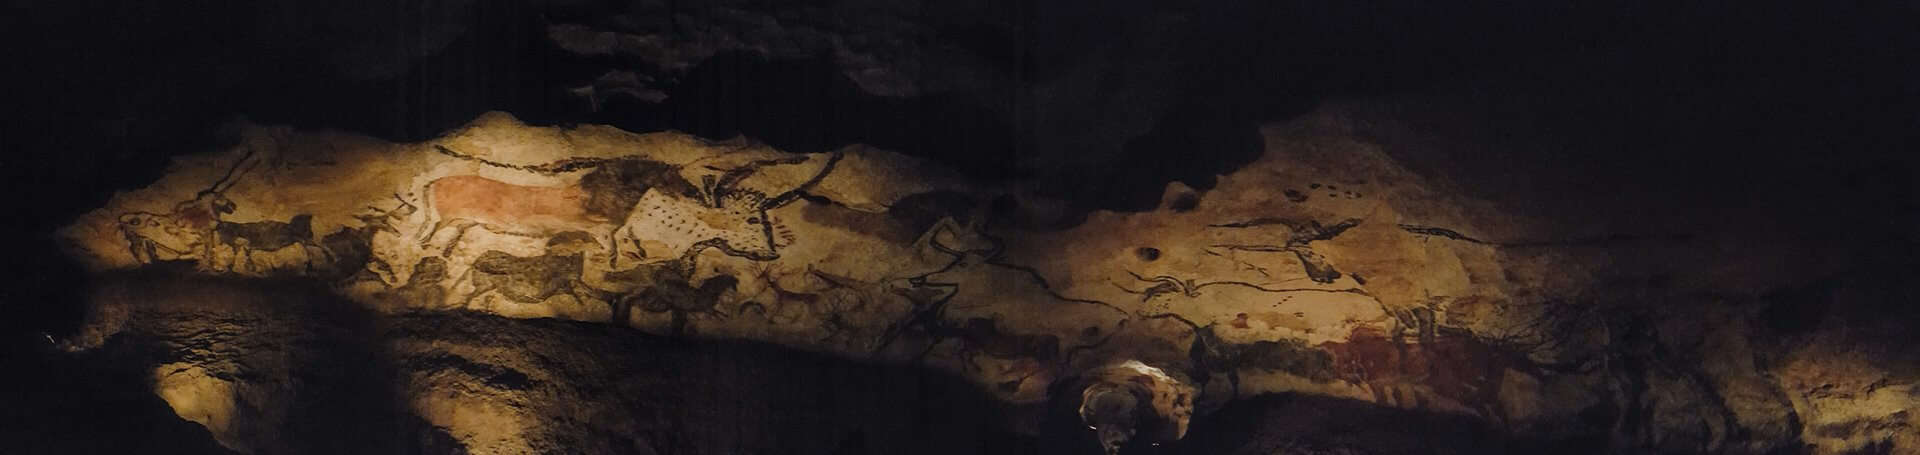 The Hall of Bulls in Lascaux 2 near Montignac in France.